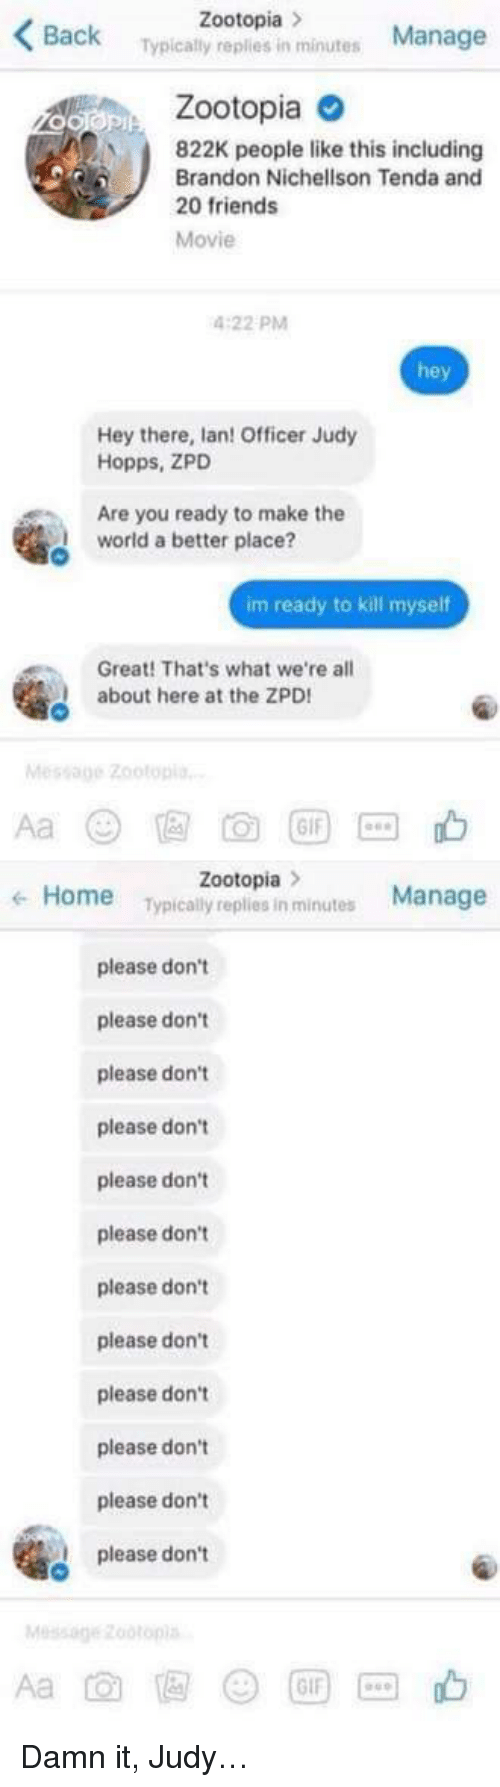 Im Ready To Kill Myself: Zootopia  Back  Manage  Typically replies in minutes  Zootopia o  822K people like this including  Brandon Nichellson Tenda and  20 friends  Movie  4:22 PM  hey  Hey there, lan! Officer Judy  Hopps, ZPD  Are you ready to make the  world a better place?  im ready to kill myself  Great! That's what we're all  about here at the ZPD  Message Zootop  Aa @ E め団回山  Zootopia  Typically replies in minutes  Home  Manage  ←  please don't  please don't  please don't  please don't  please don't  please don't  please don't  please don't  please don't  please don't  please don't  please don't  Message zootop <p>Damn it, Judy&hellip;</p>